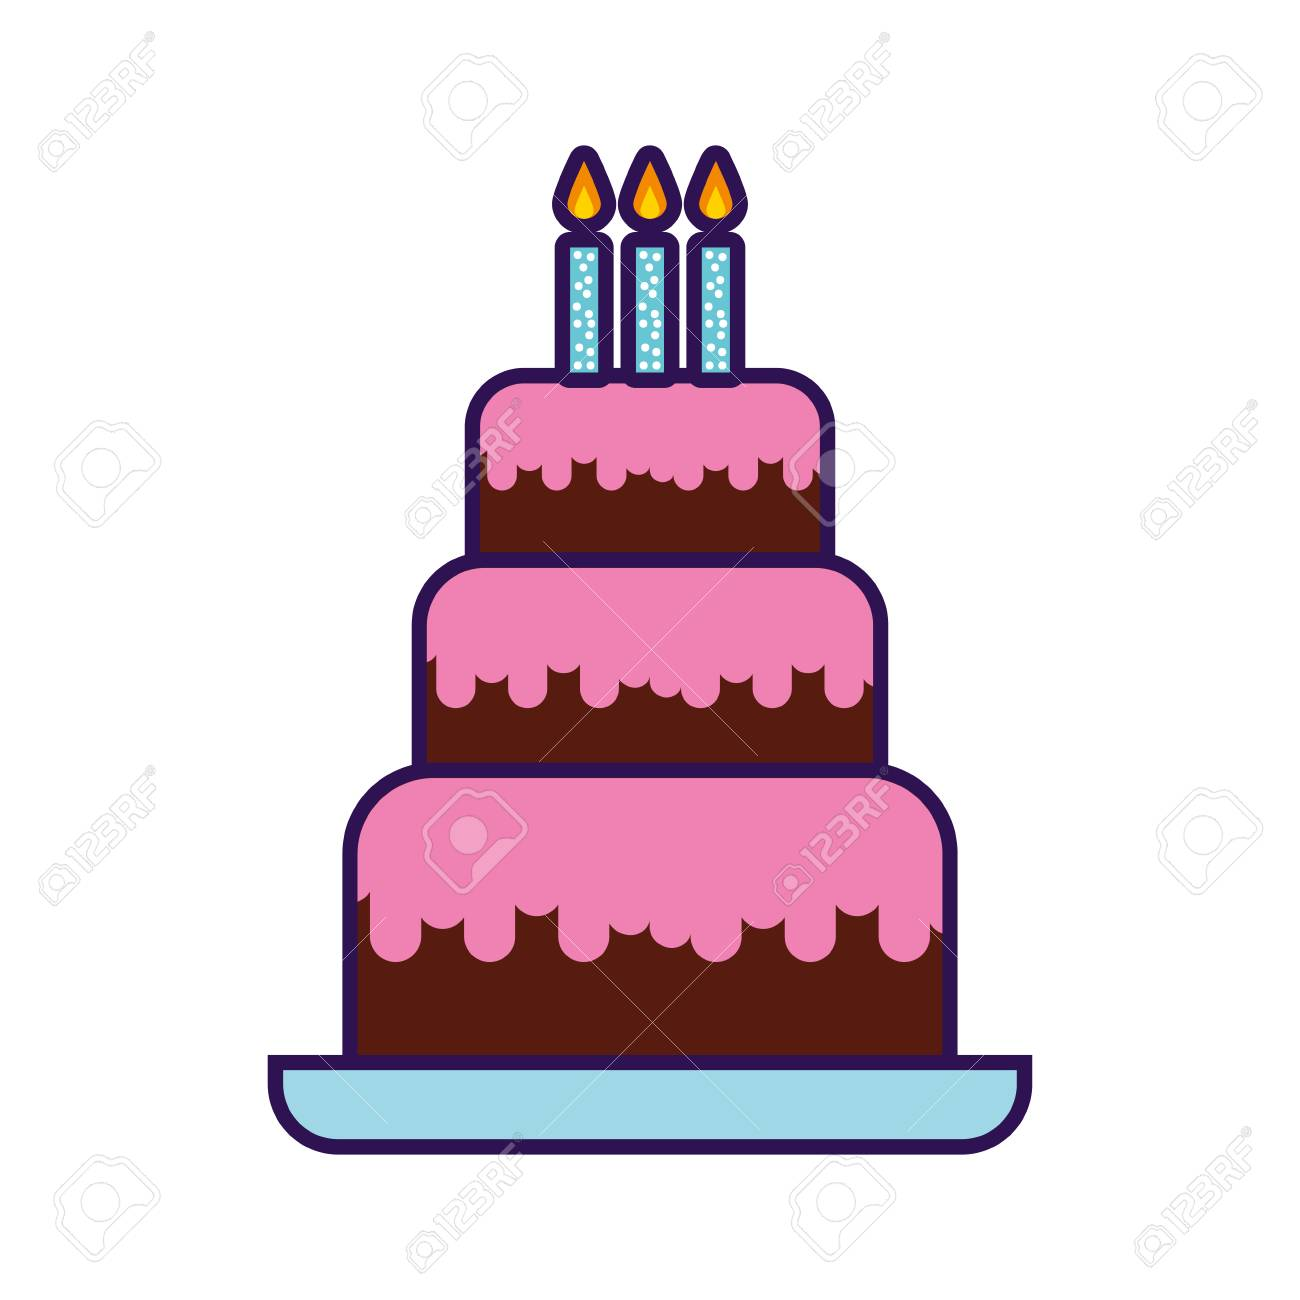 Cute Birthday Cake Cartoon Vector Graphic Design Stock